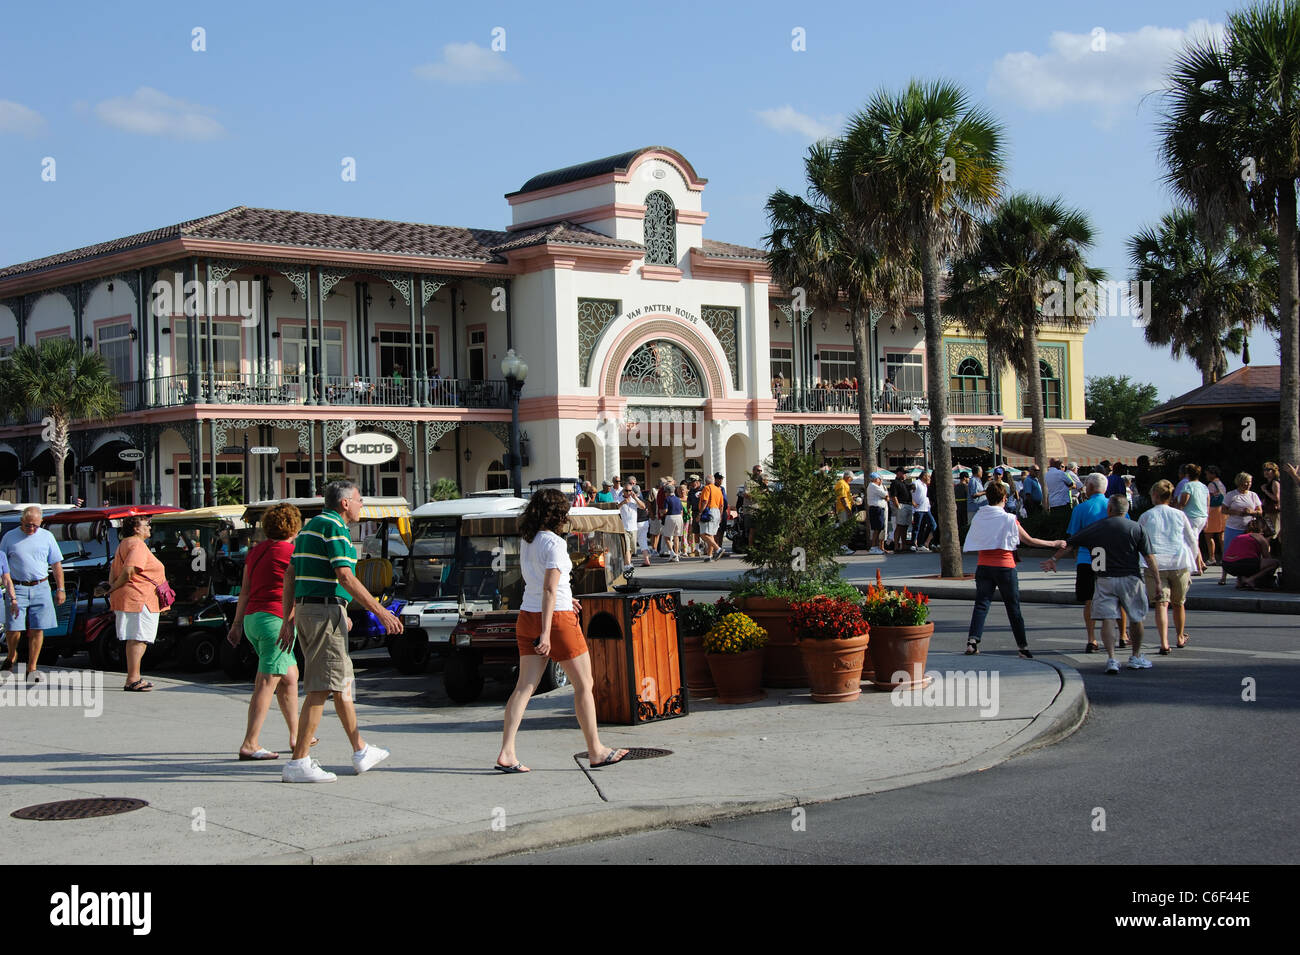 Hotels In Spanish Springs The Villages Image Mag : spanish springs town square in the villages retirement hometown florida C6F44E from imagemag.ru size 1300 x 955 jpeg 230kB